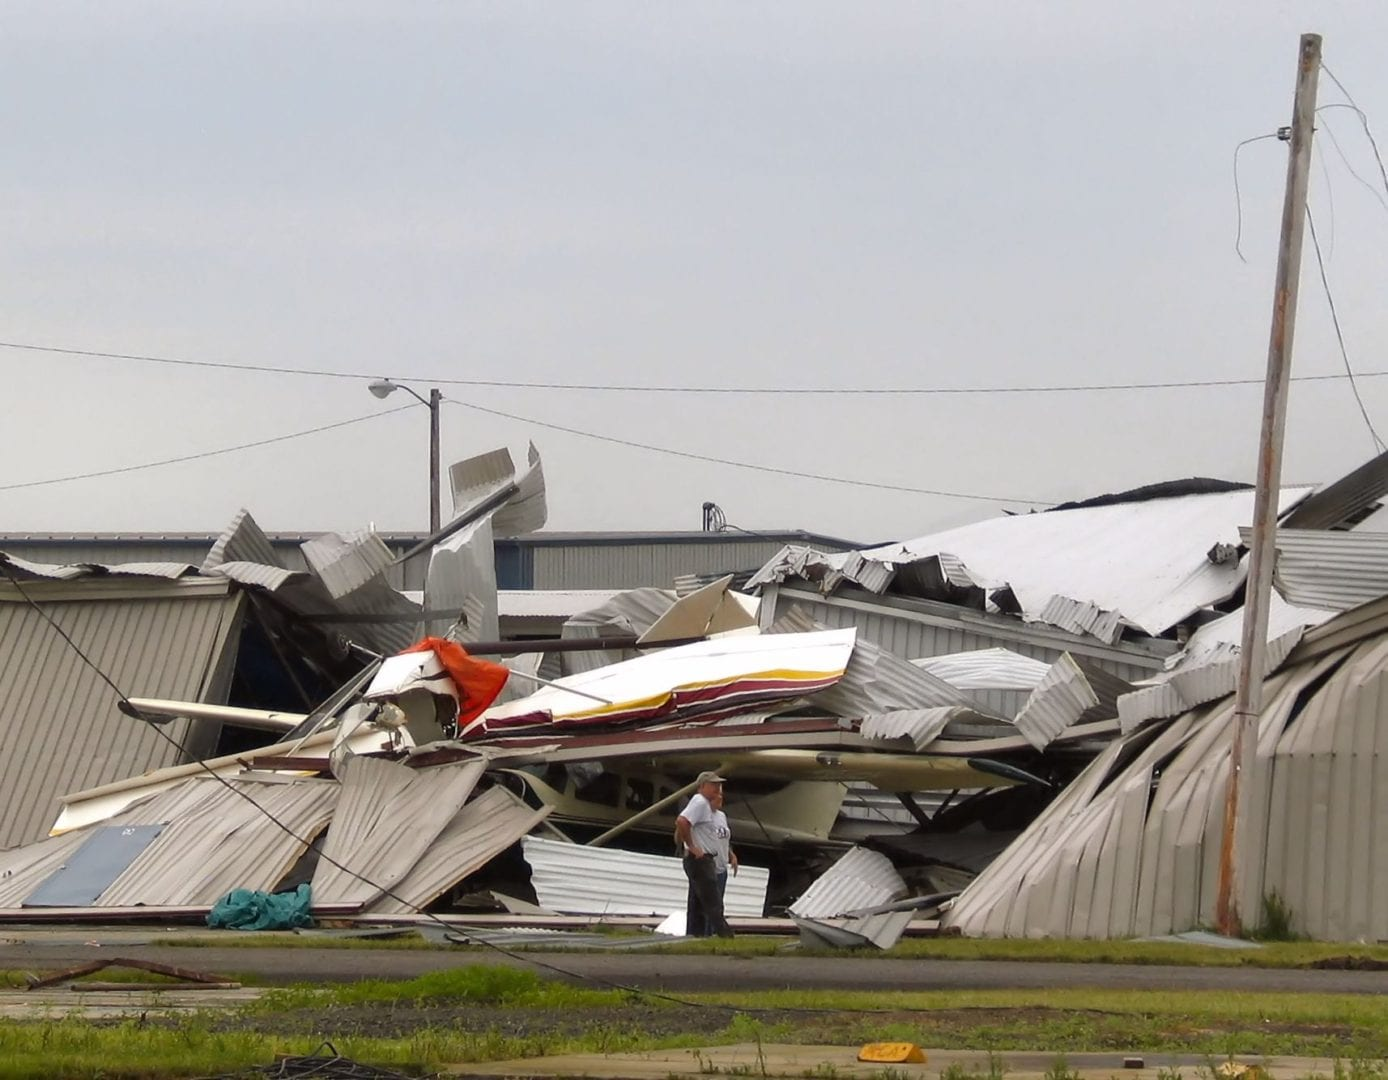 A ruined warehouse due to a tornado